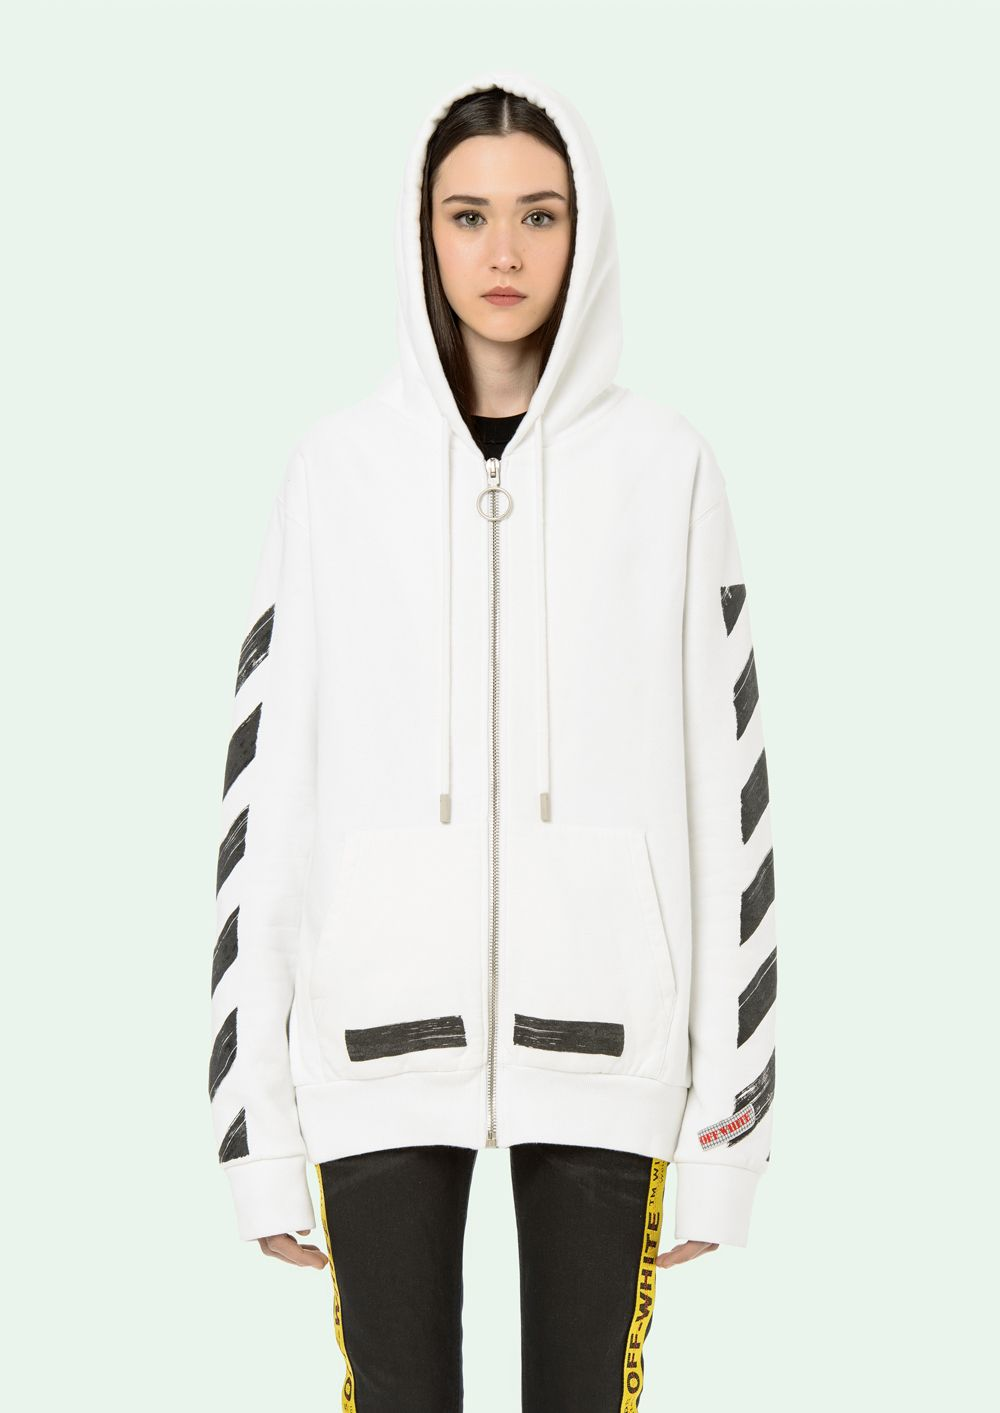 2a585287 OFF WHITE - Diag Brushed Zip Hoodie White Black | Inspo | Off white ...